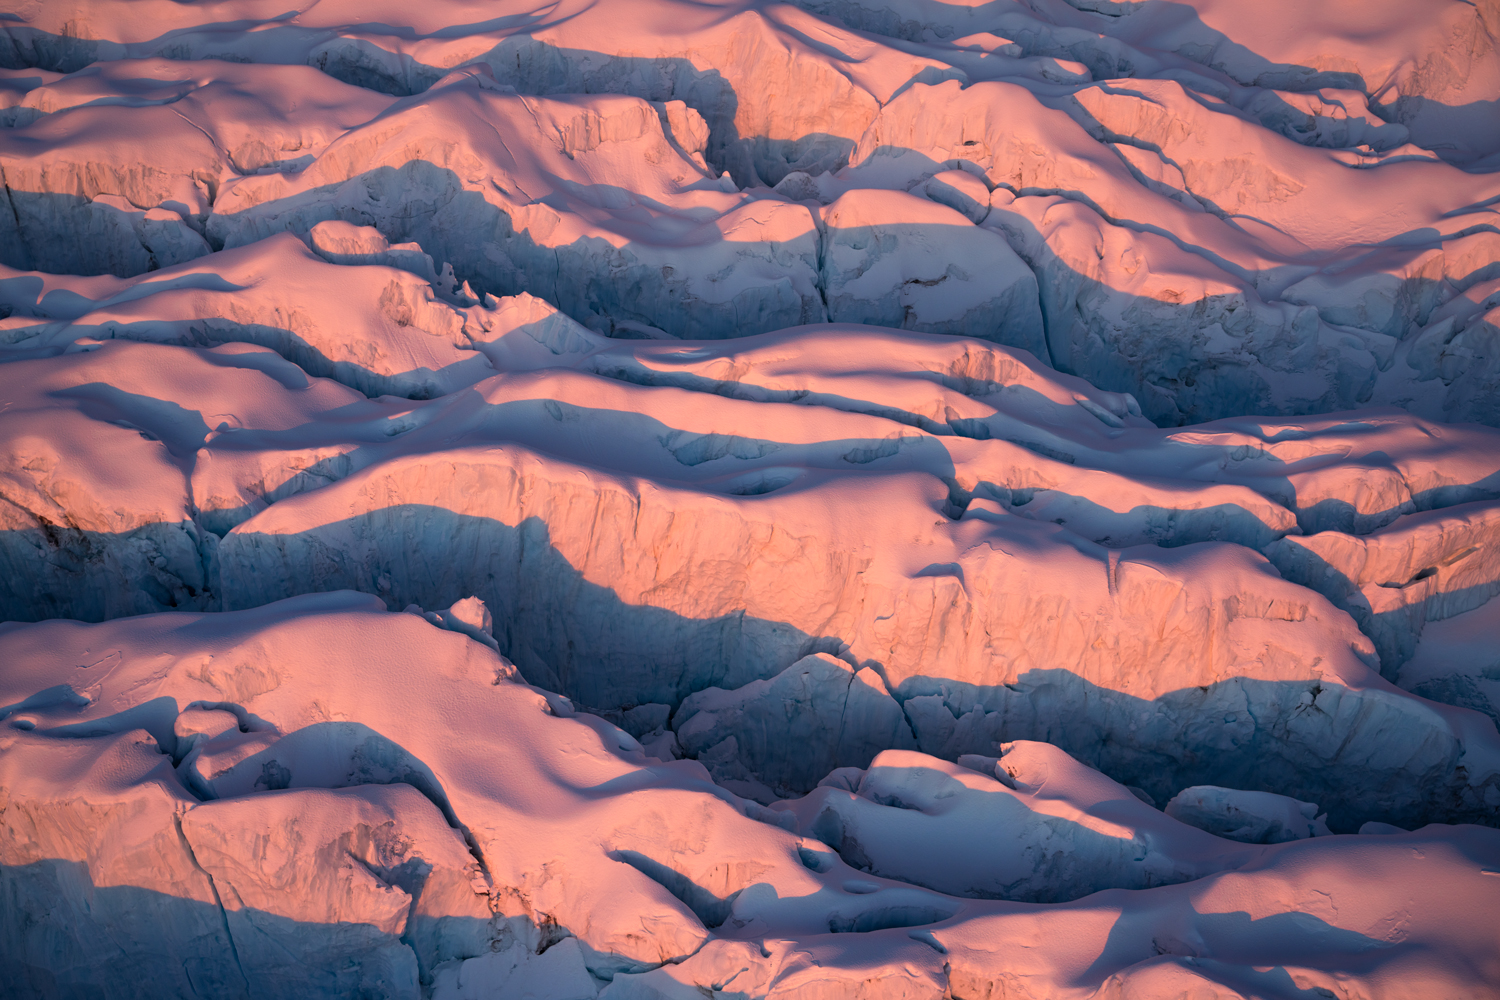 Pink ice in sunset light